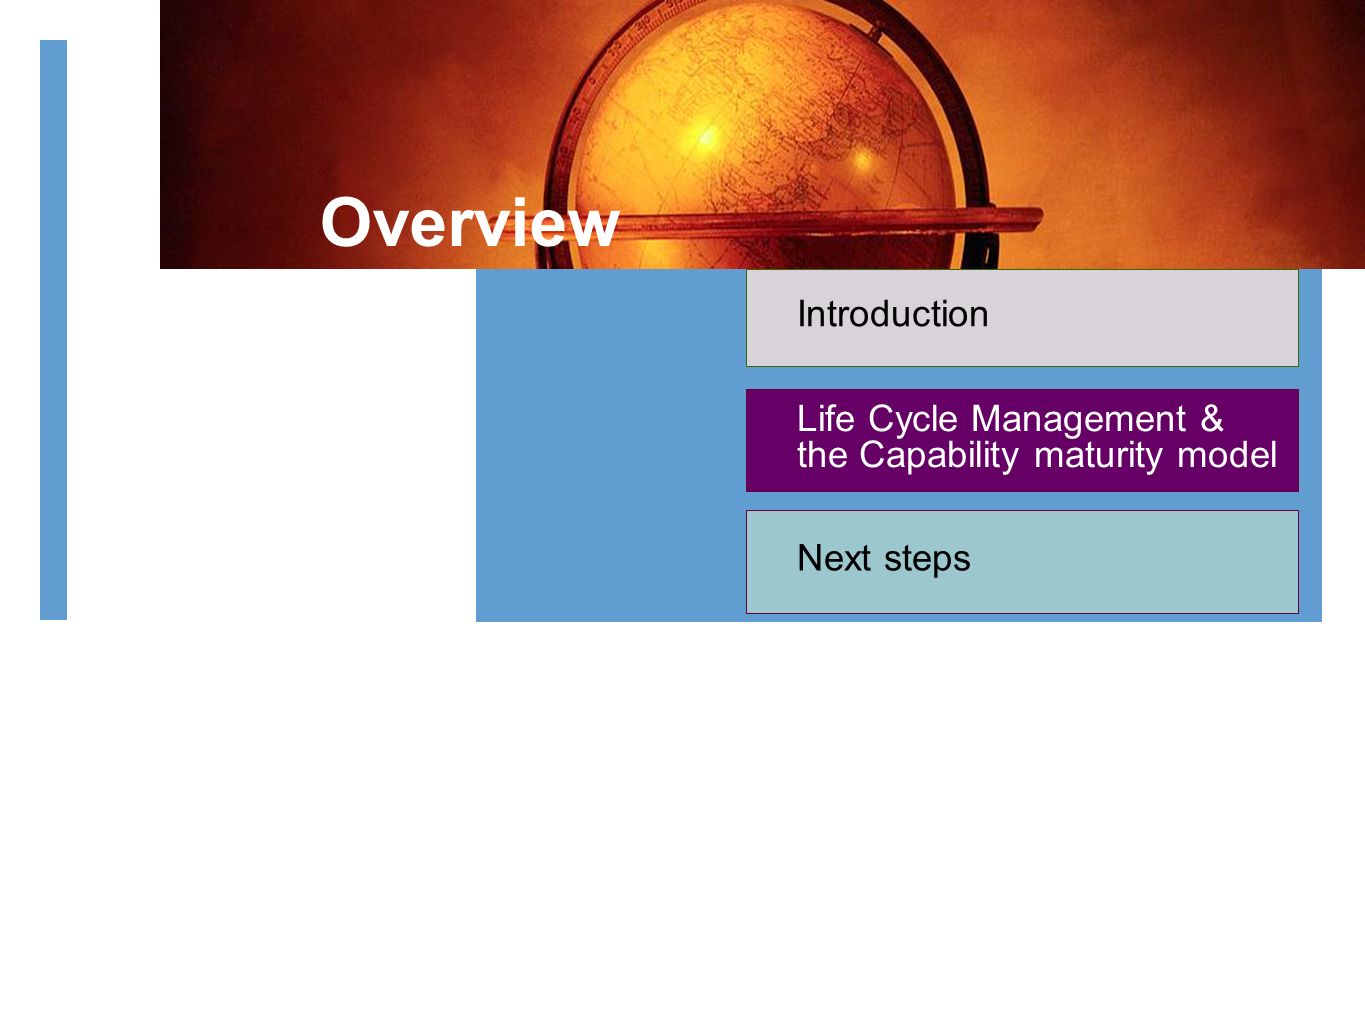 Life Cycle Management & the Capability maturity model Introduction Overview Next steps